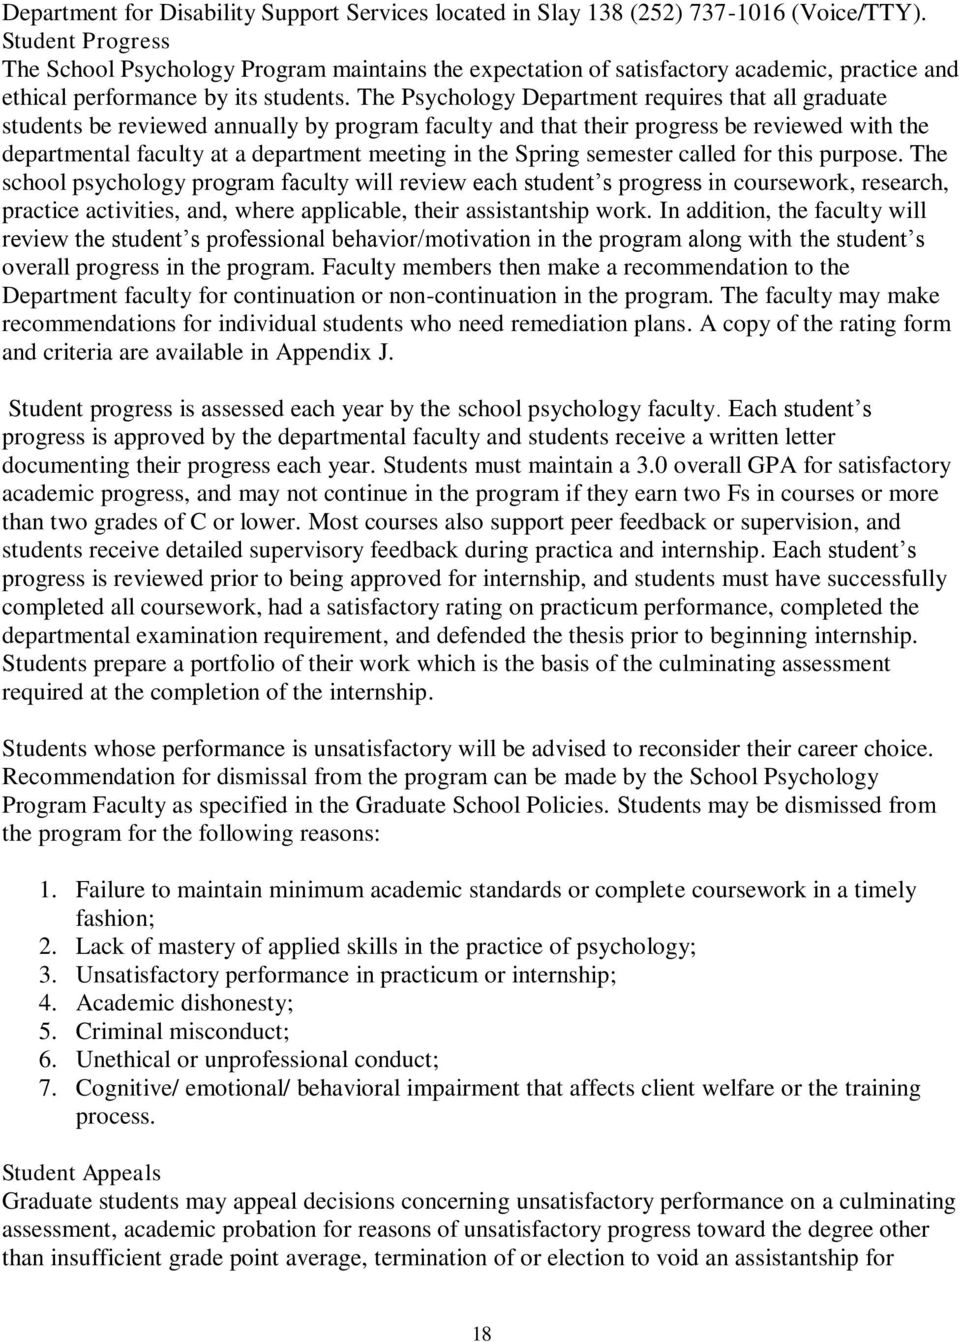 The Psychology Department requires that all graduate students be reviewed annually by program faculty and that their progress be reviewed with the departmental faculty at a department meeting in the